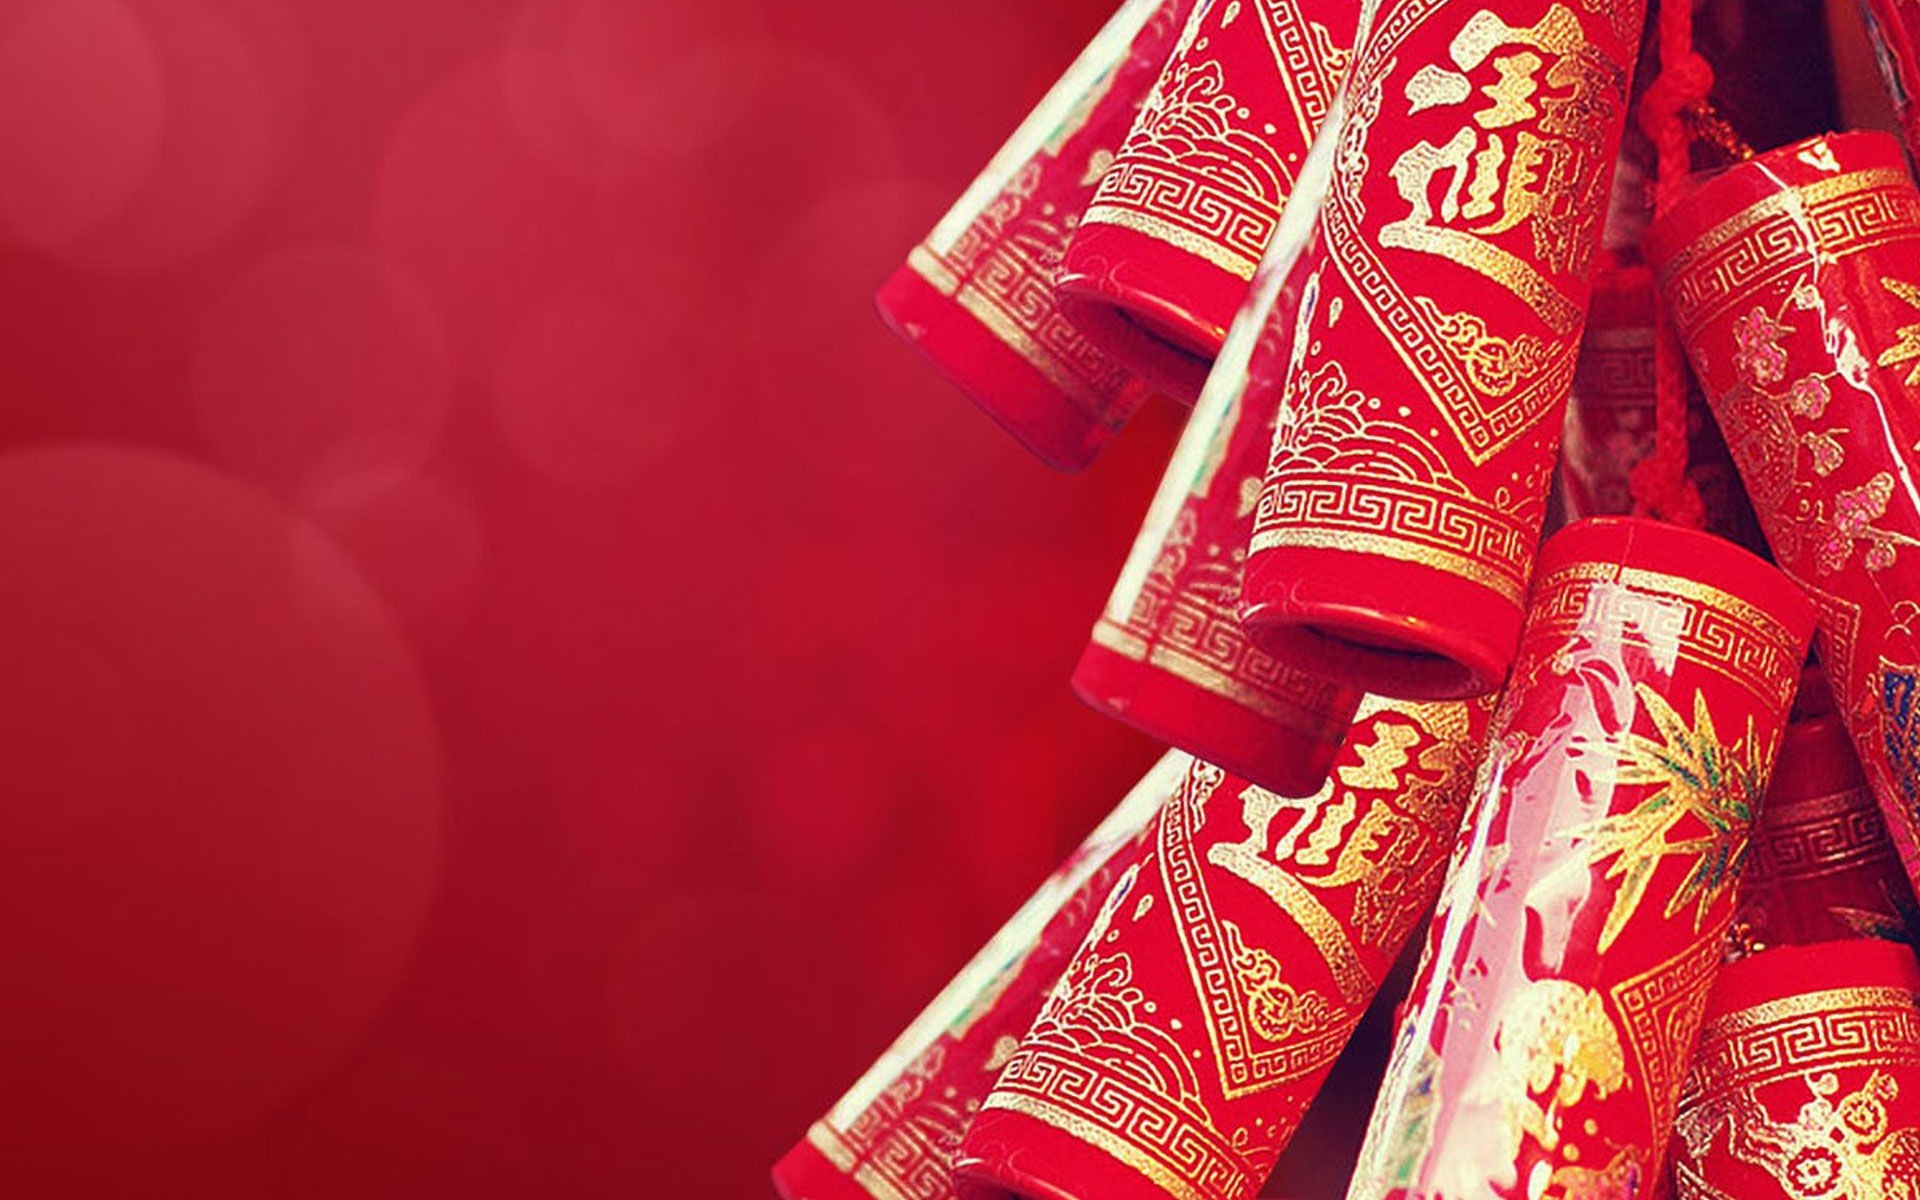 Abstract 2013 Cute Chinese New Year Wallpaper Wallpaper